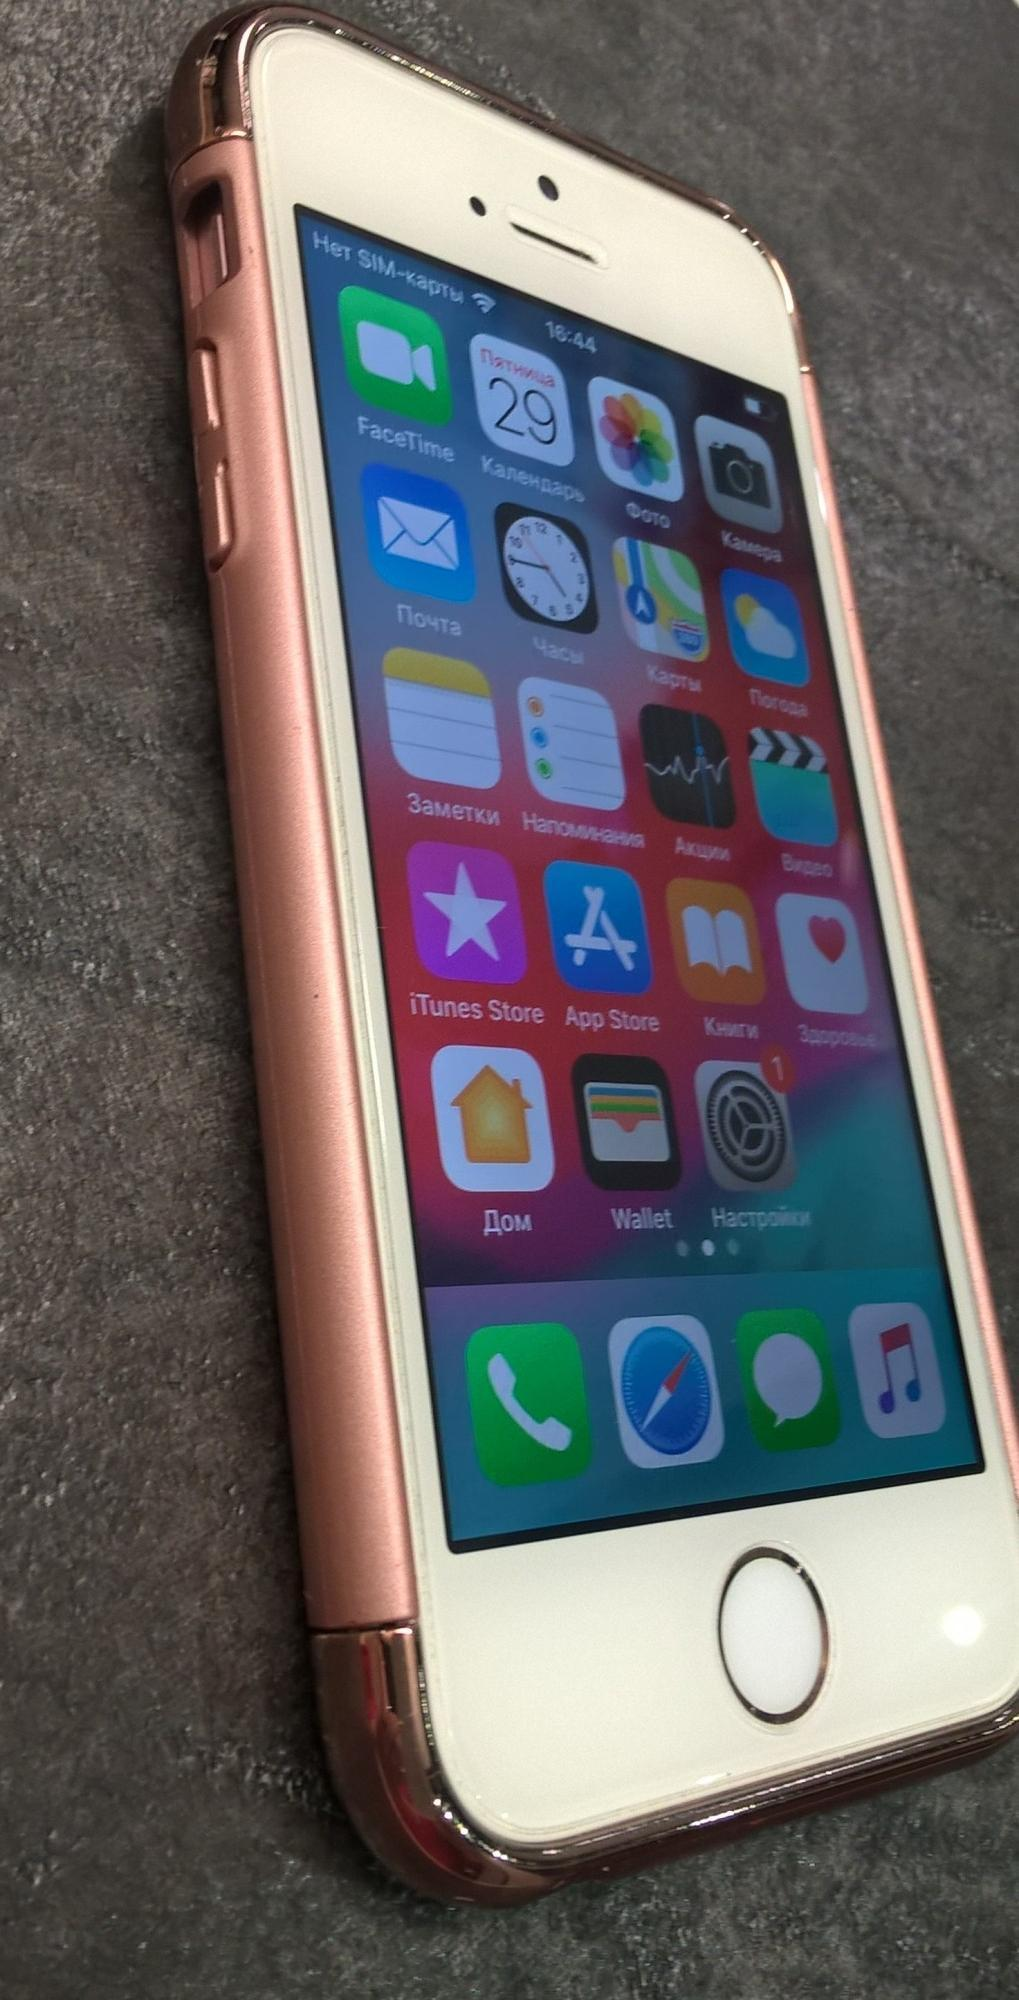 cc88e251463 Mobiiltelefonid Apple IPHONE SE 32GB ROSE GOLD - Luutar